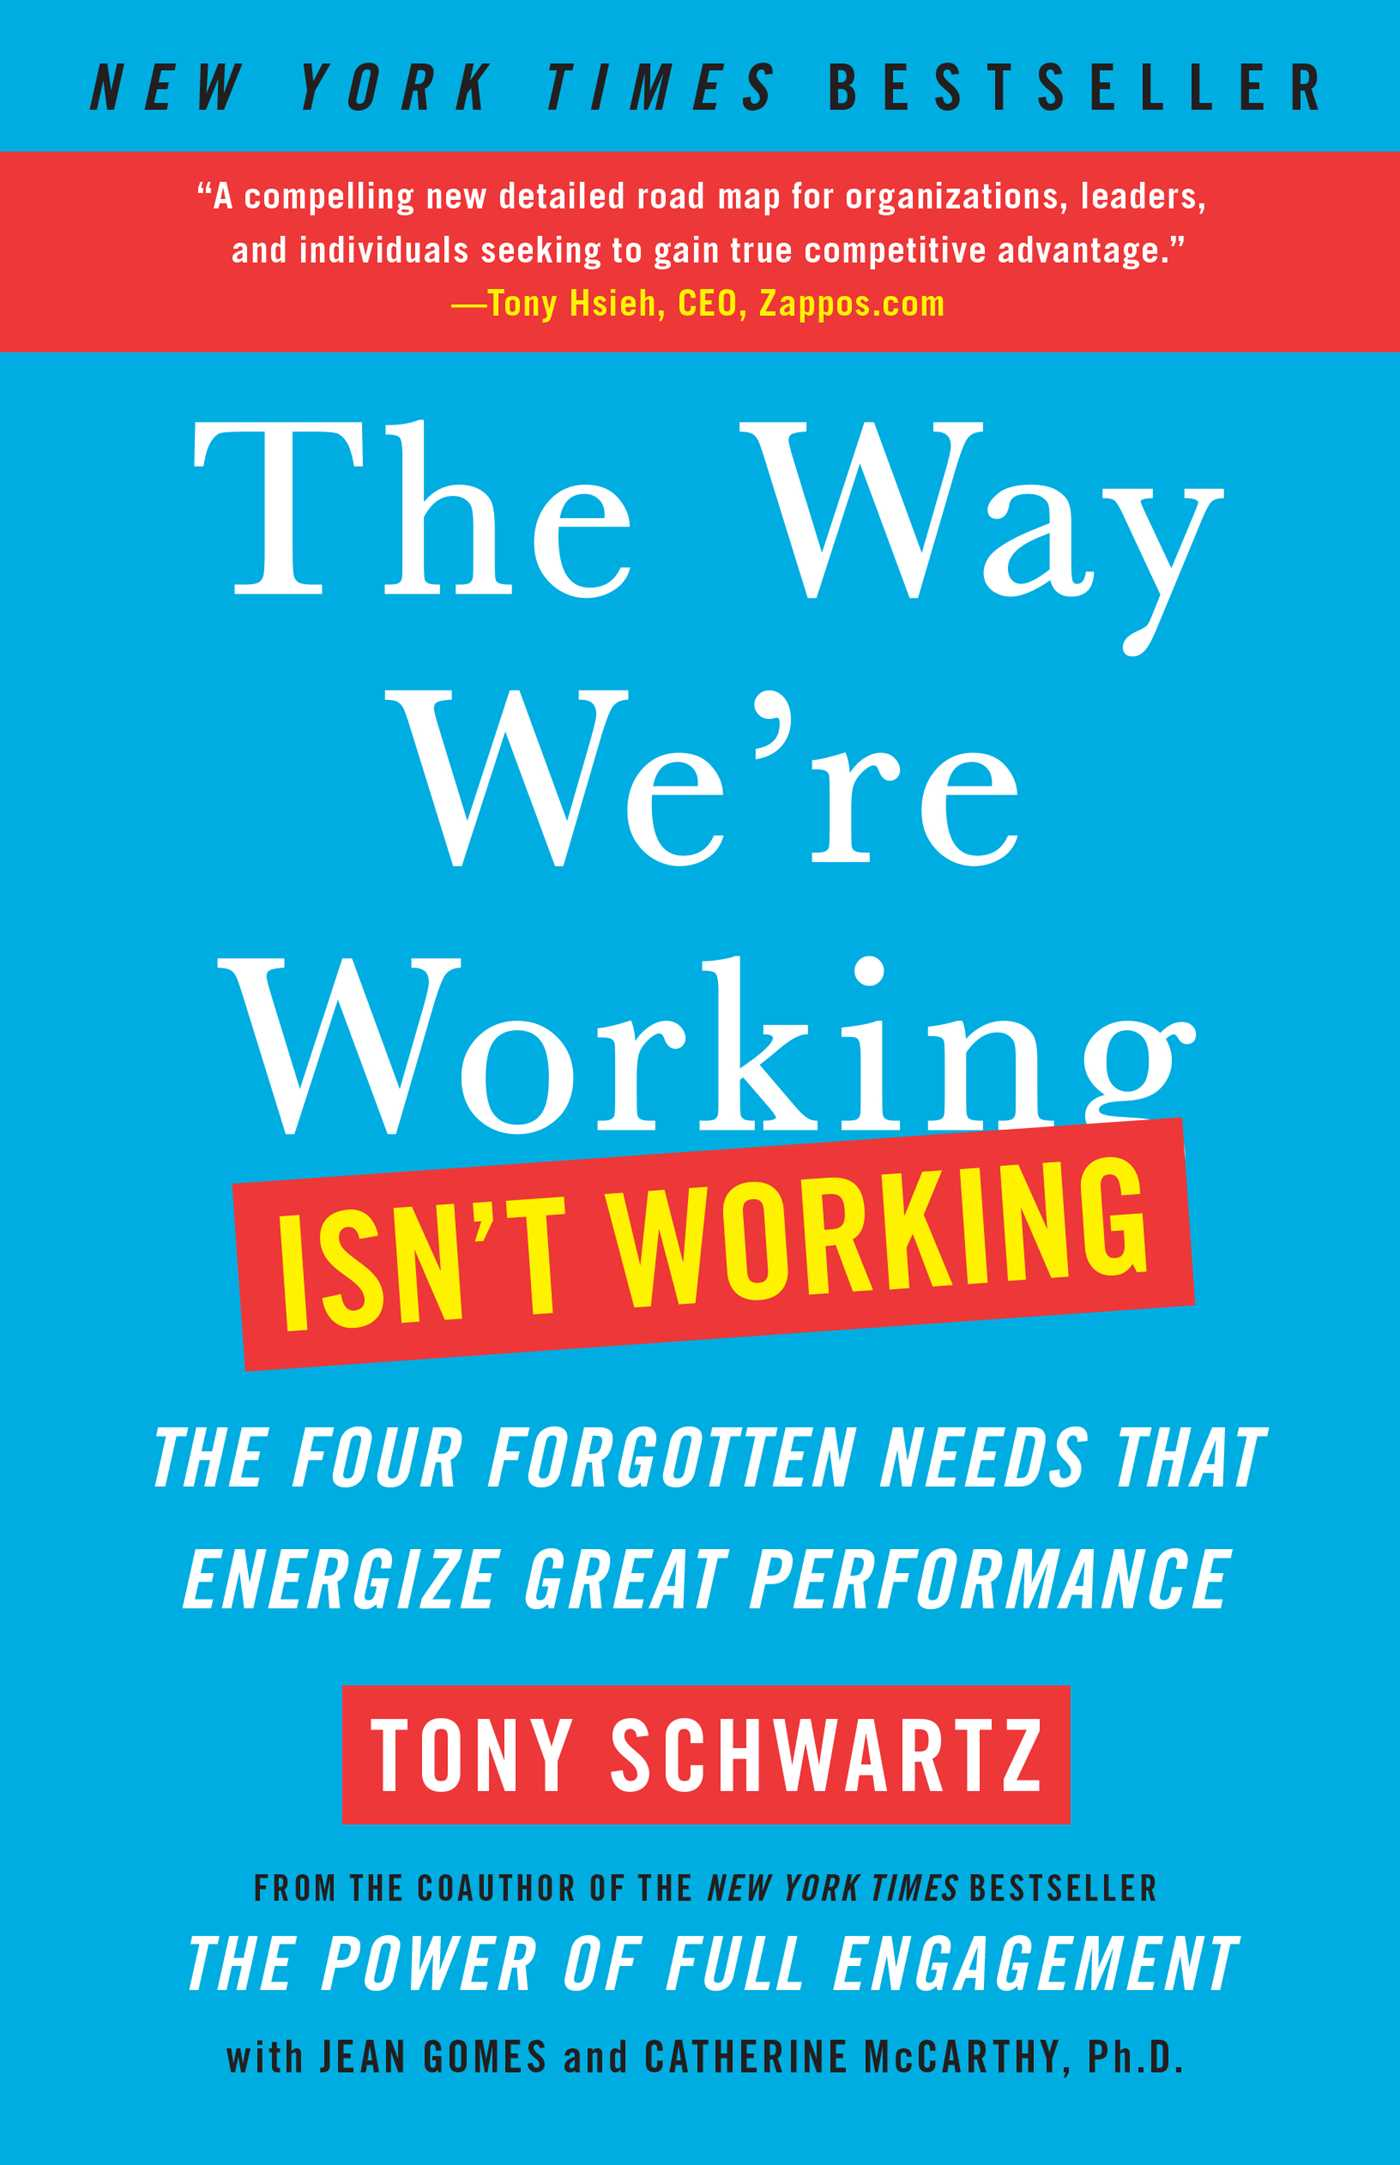 Download Ebook The Way We're Working Isn't Working by Tony Schwartz Pdf